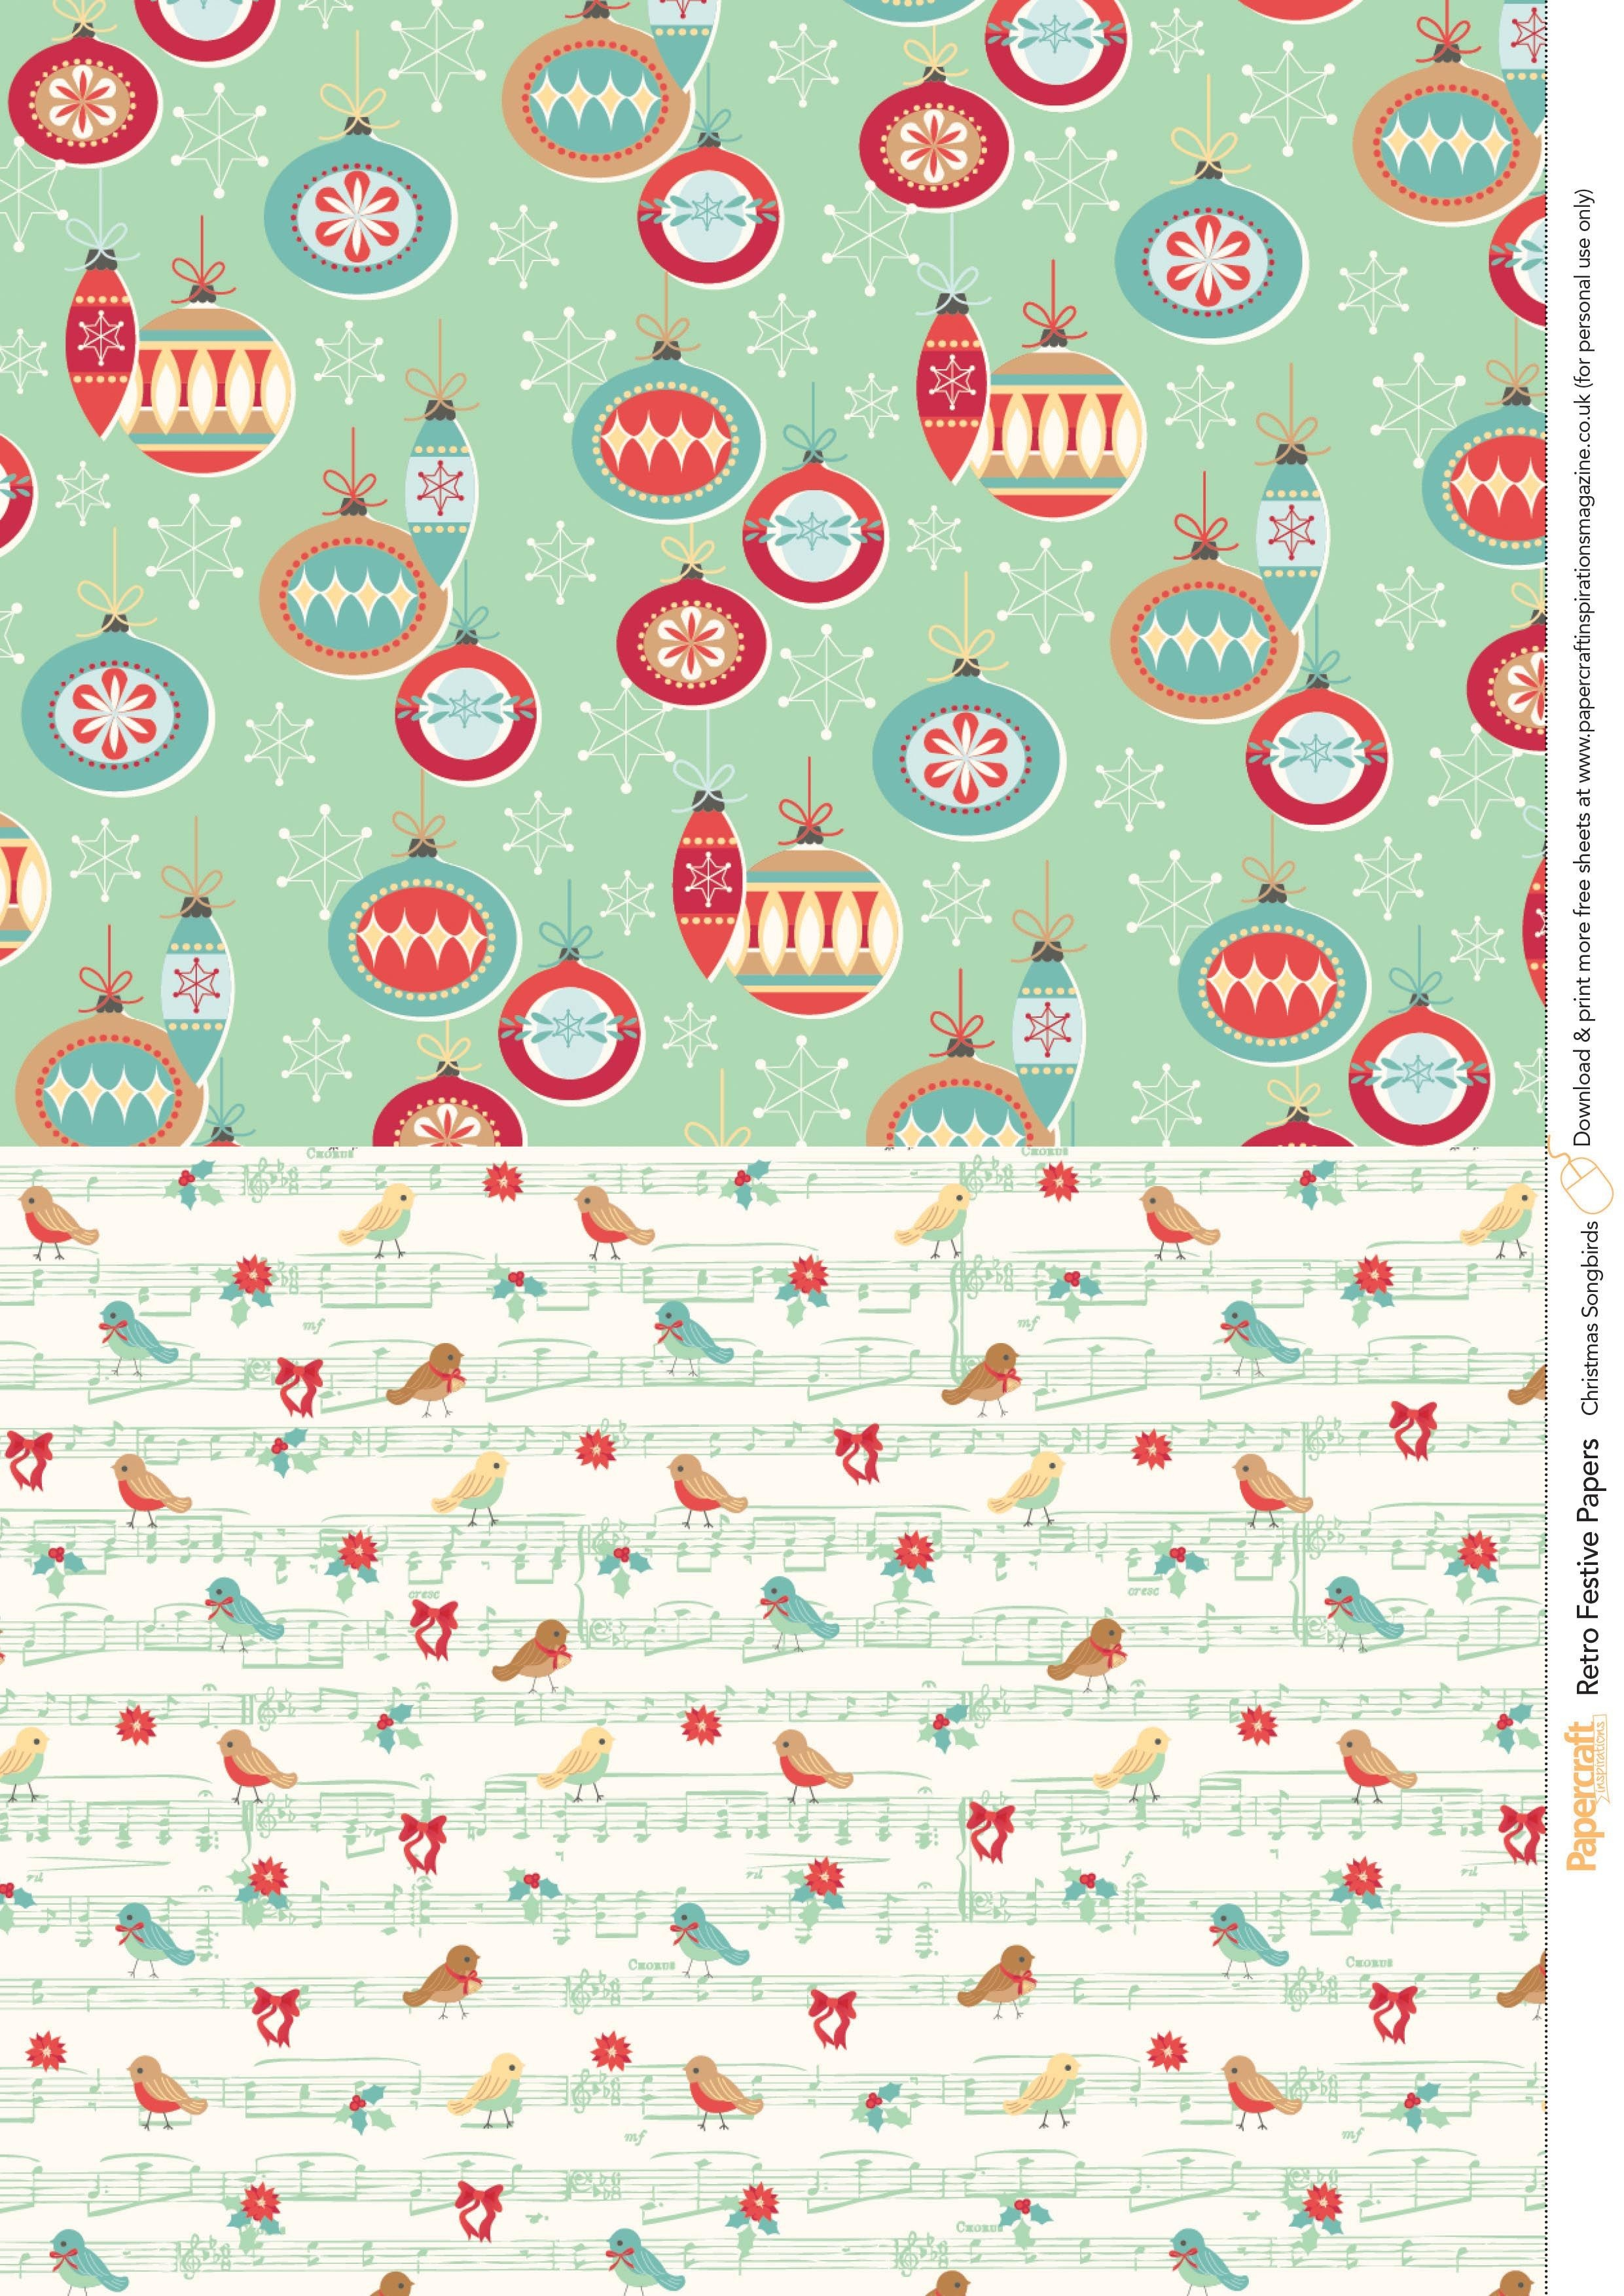 Retro Festive Free Printables From Papercraft Inspirations 145 - Free Printable Pattern Paper Sheets